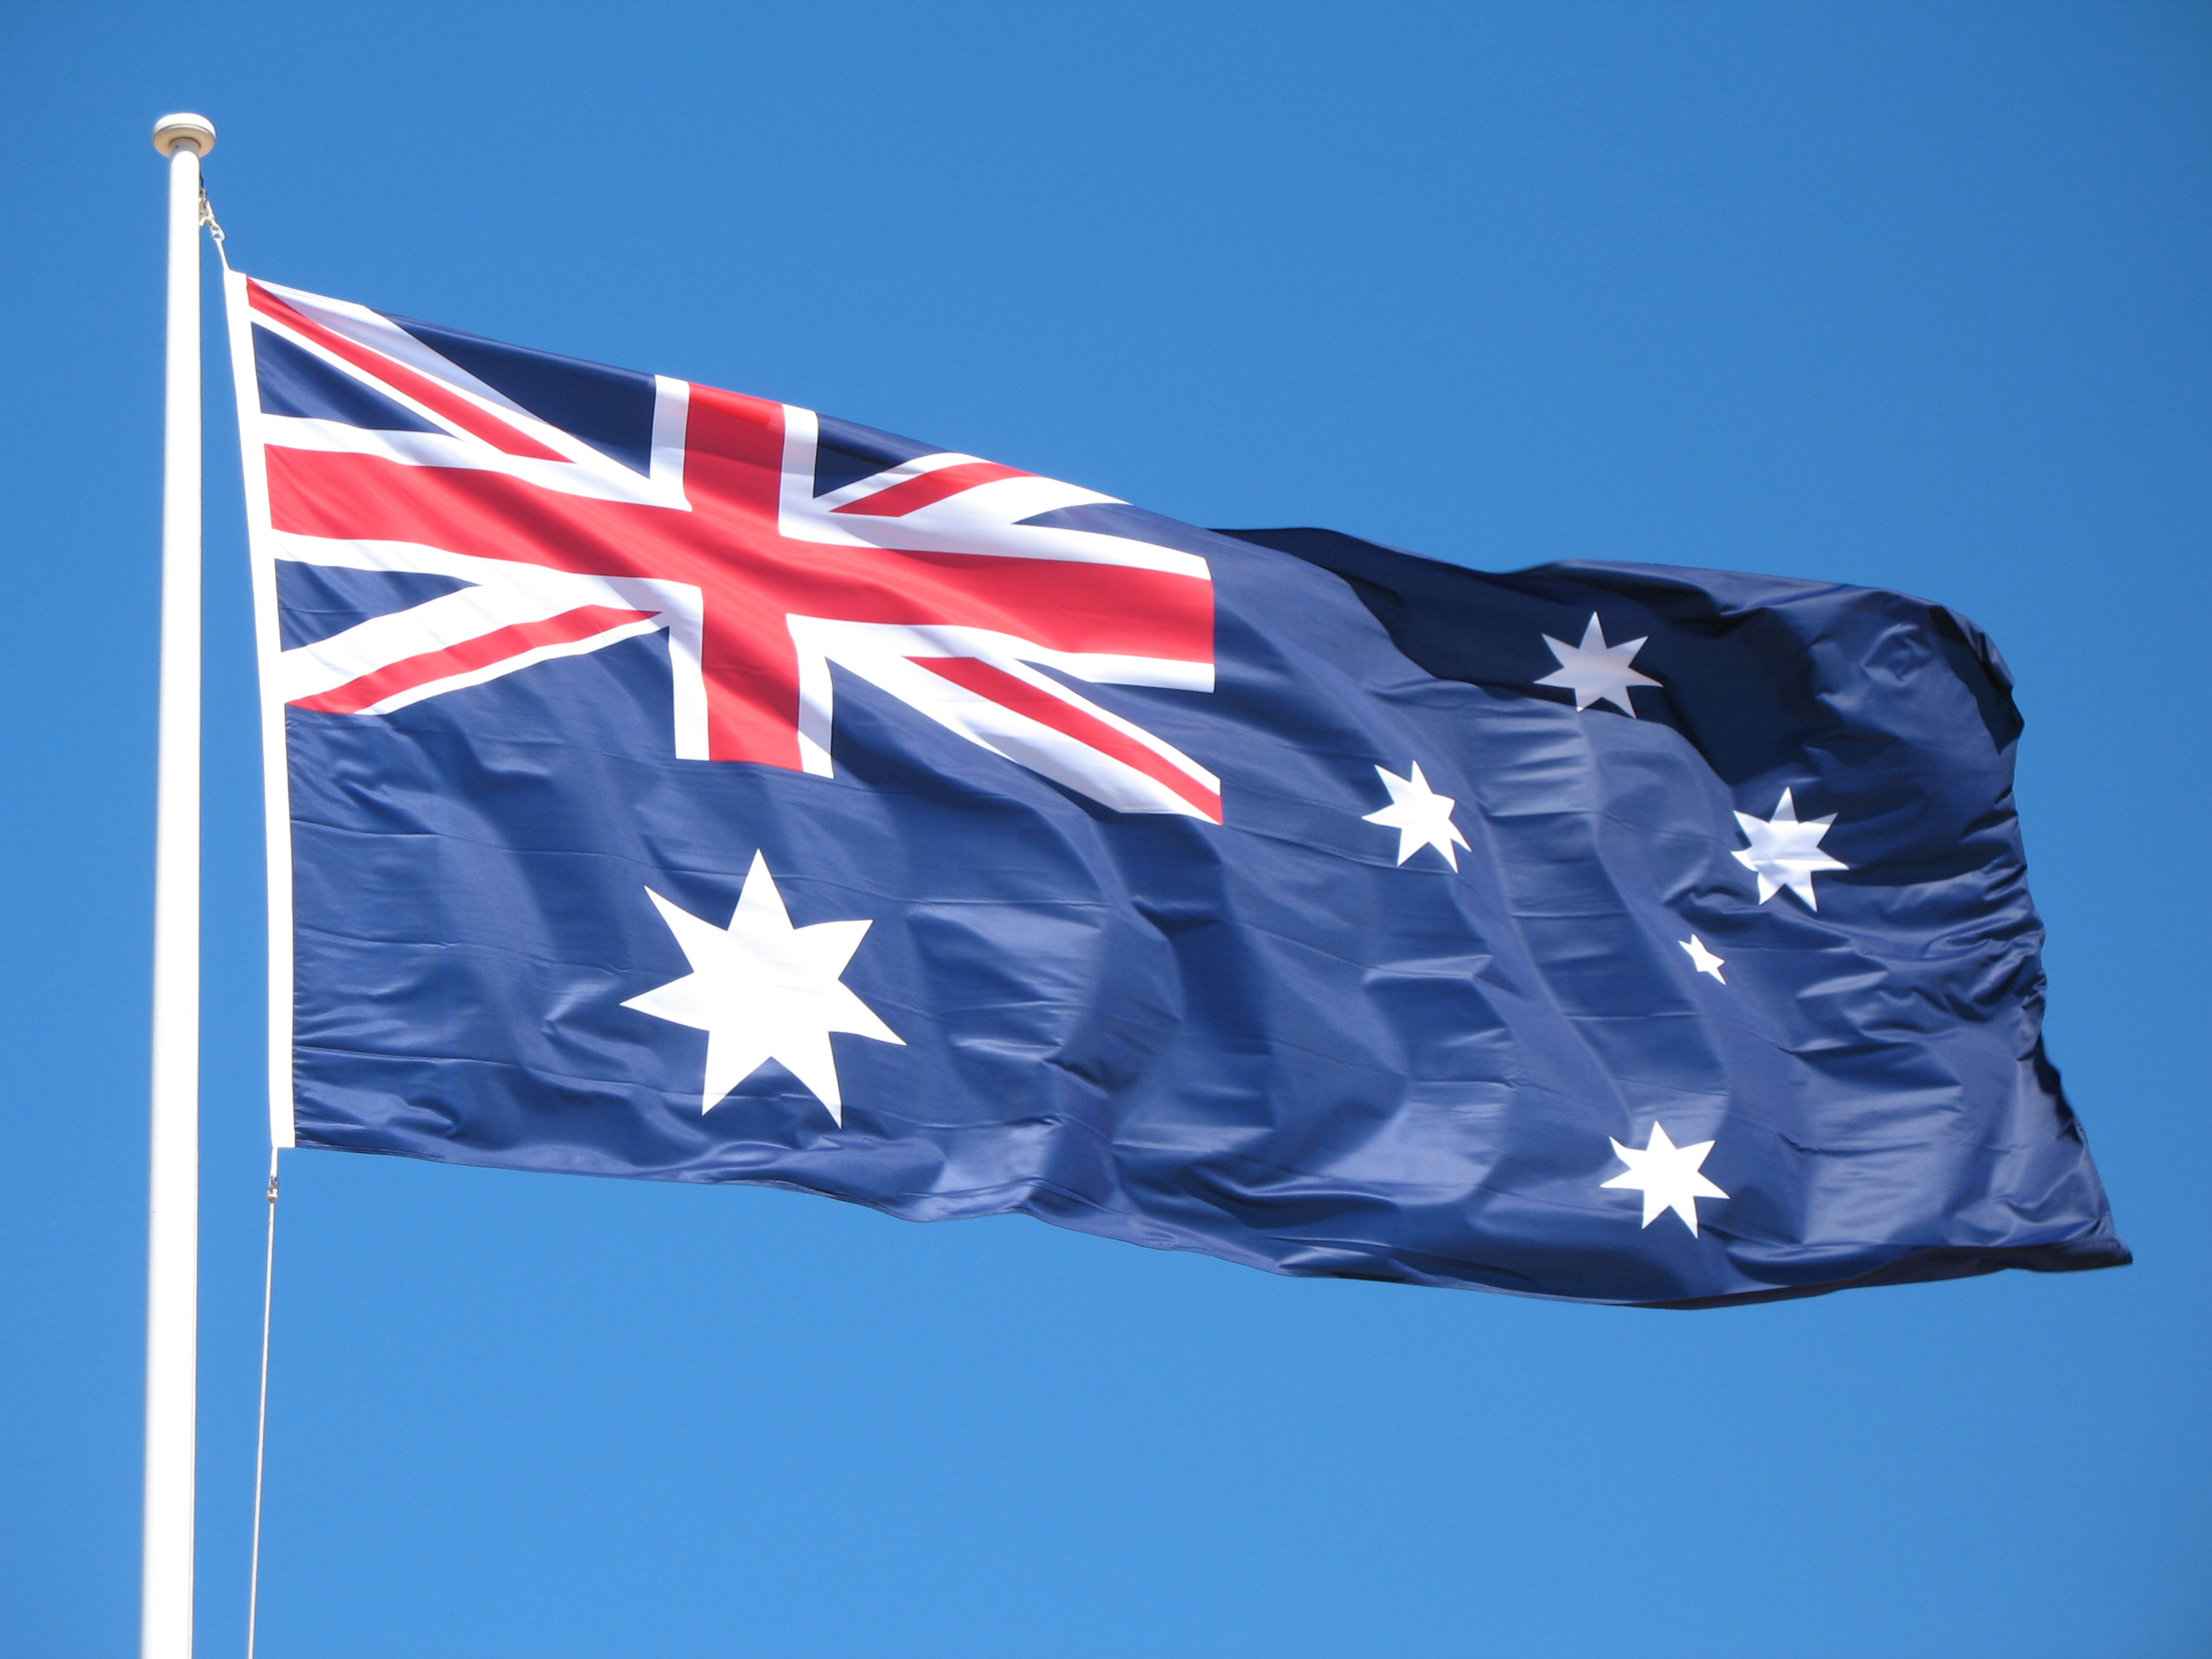 Australian 457 Visa Program To Be Clamped Down